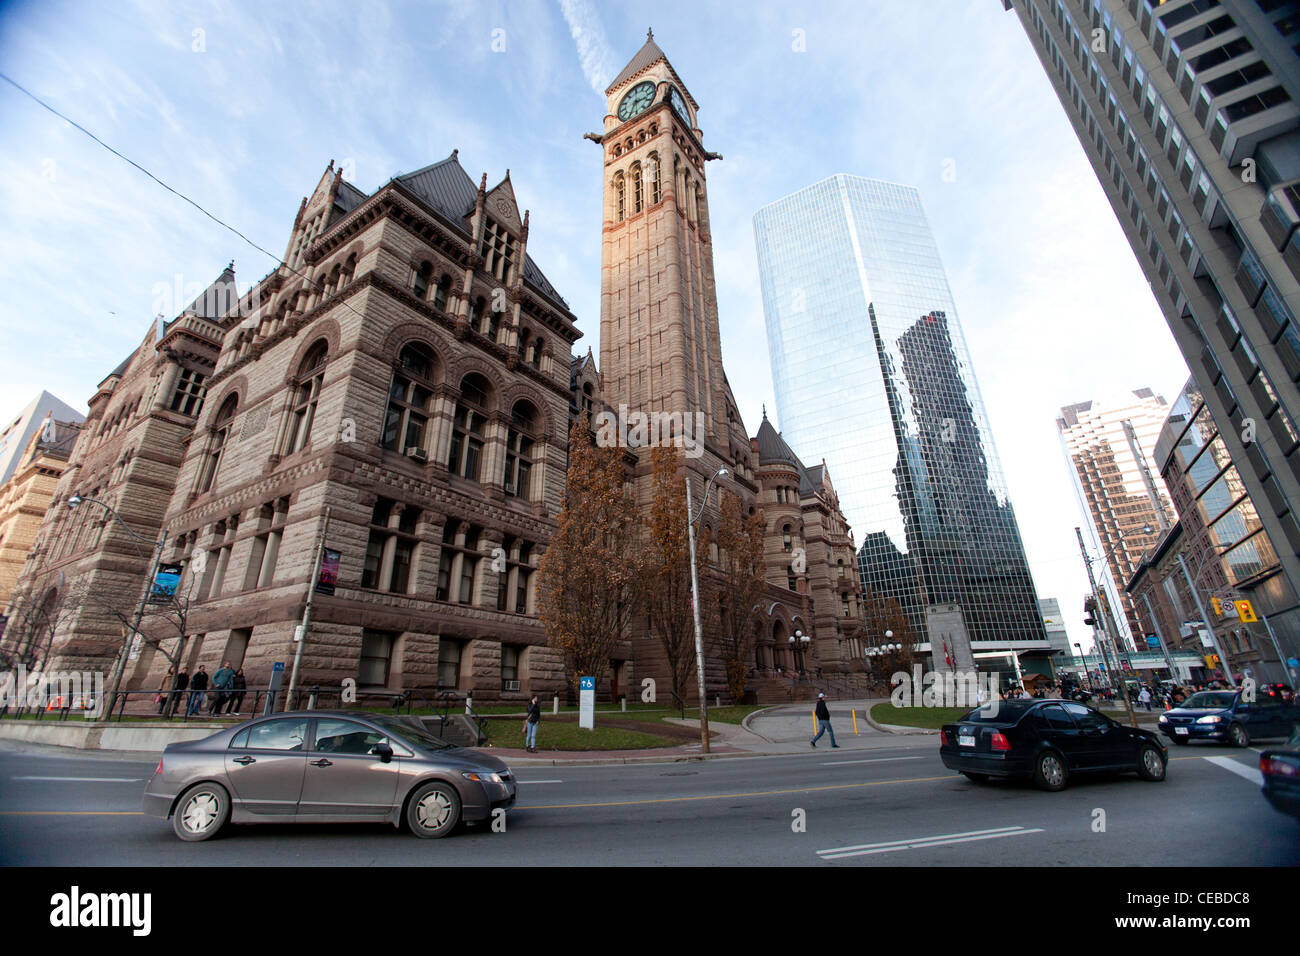 Contrasts between old and new Toronto city halls - Stock Image